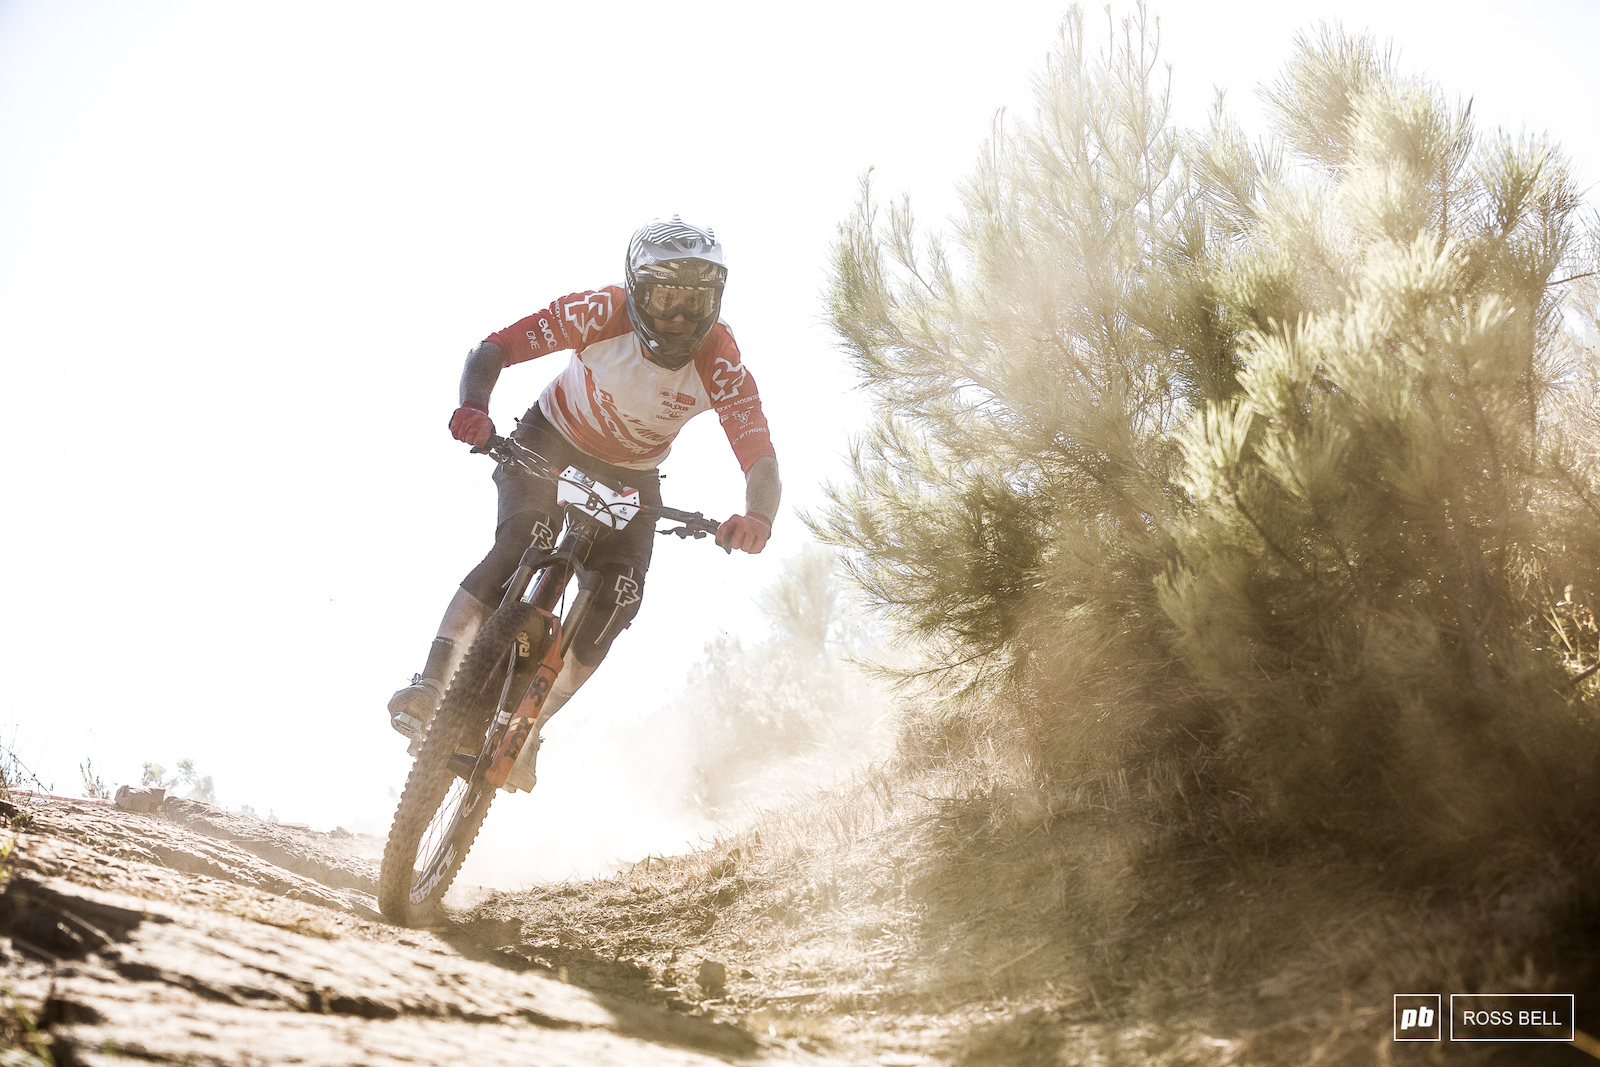 Remi Gauvin powering through the dust lingering in the air.